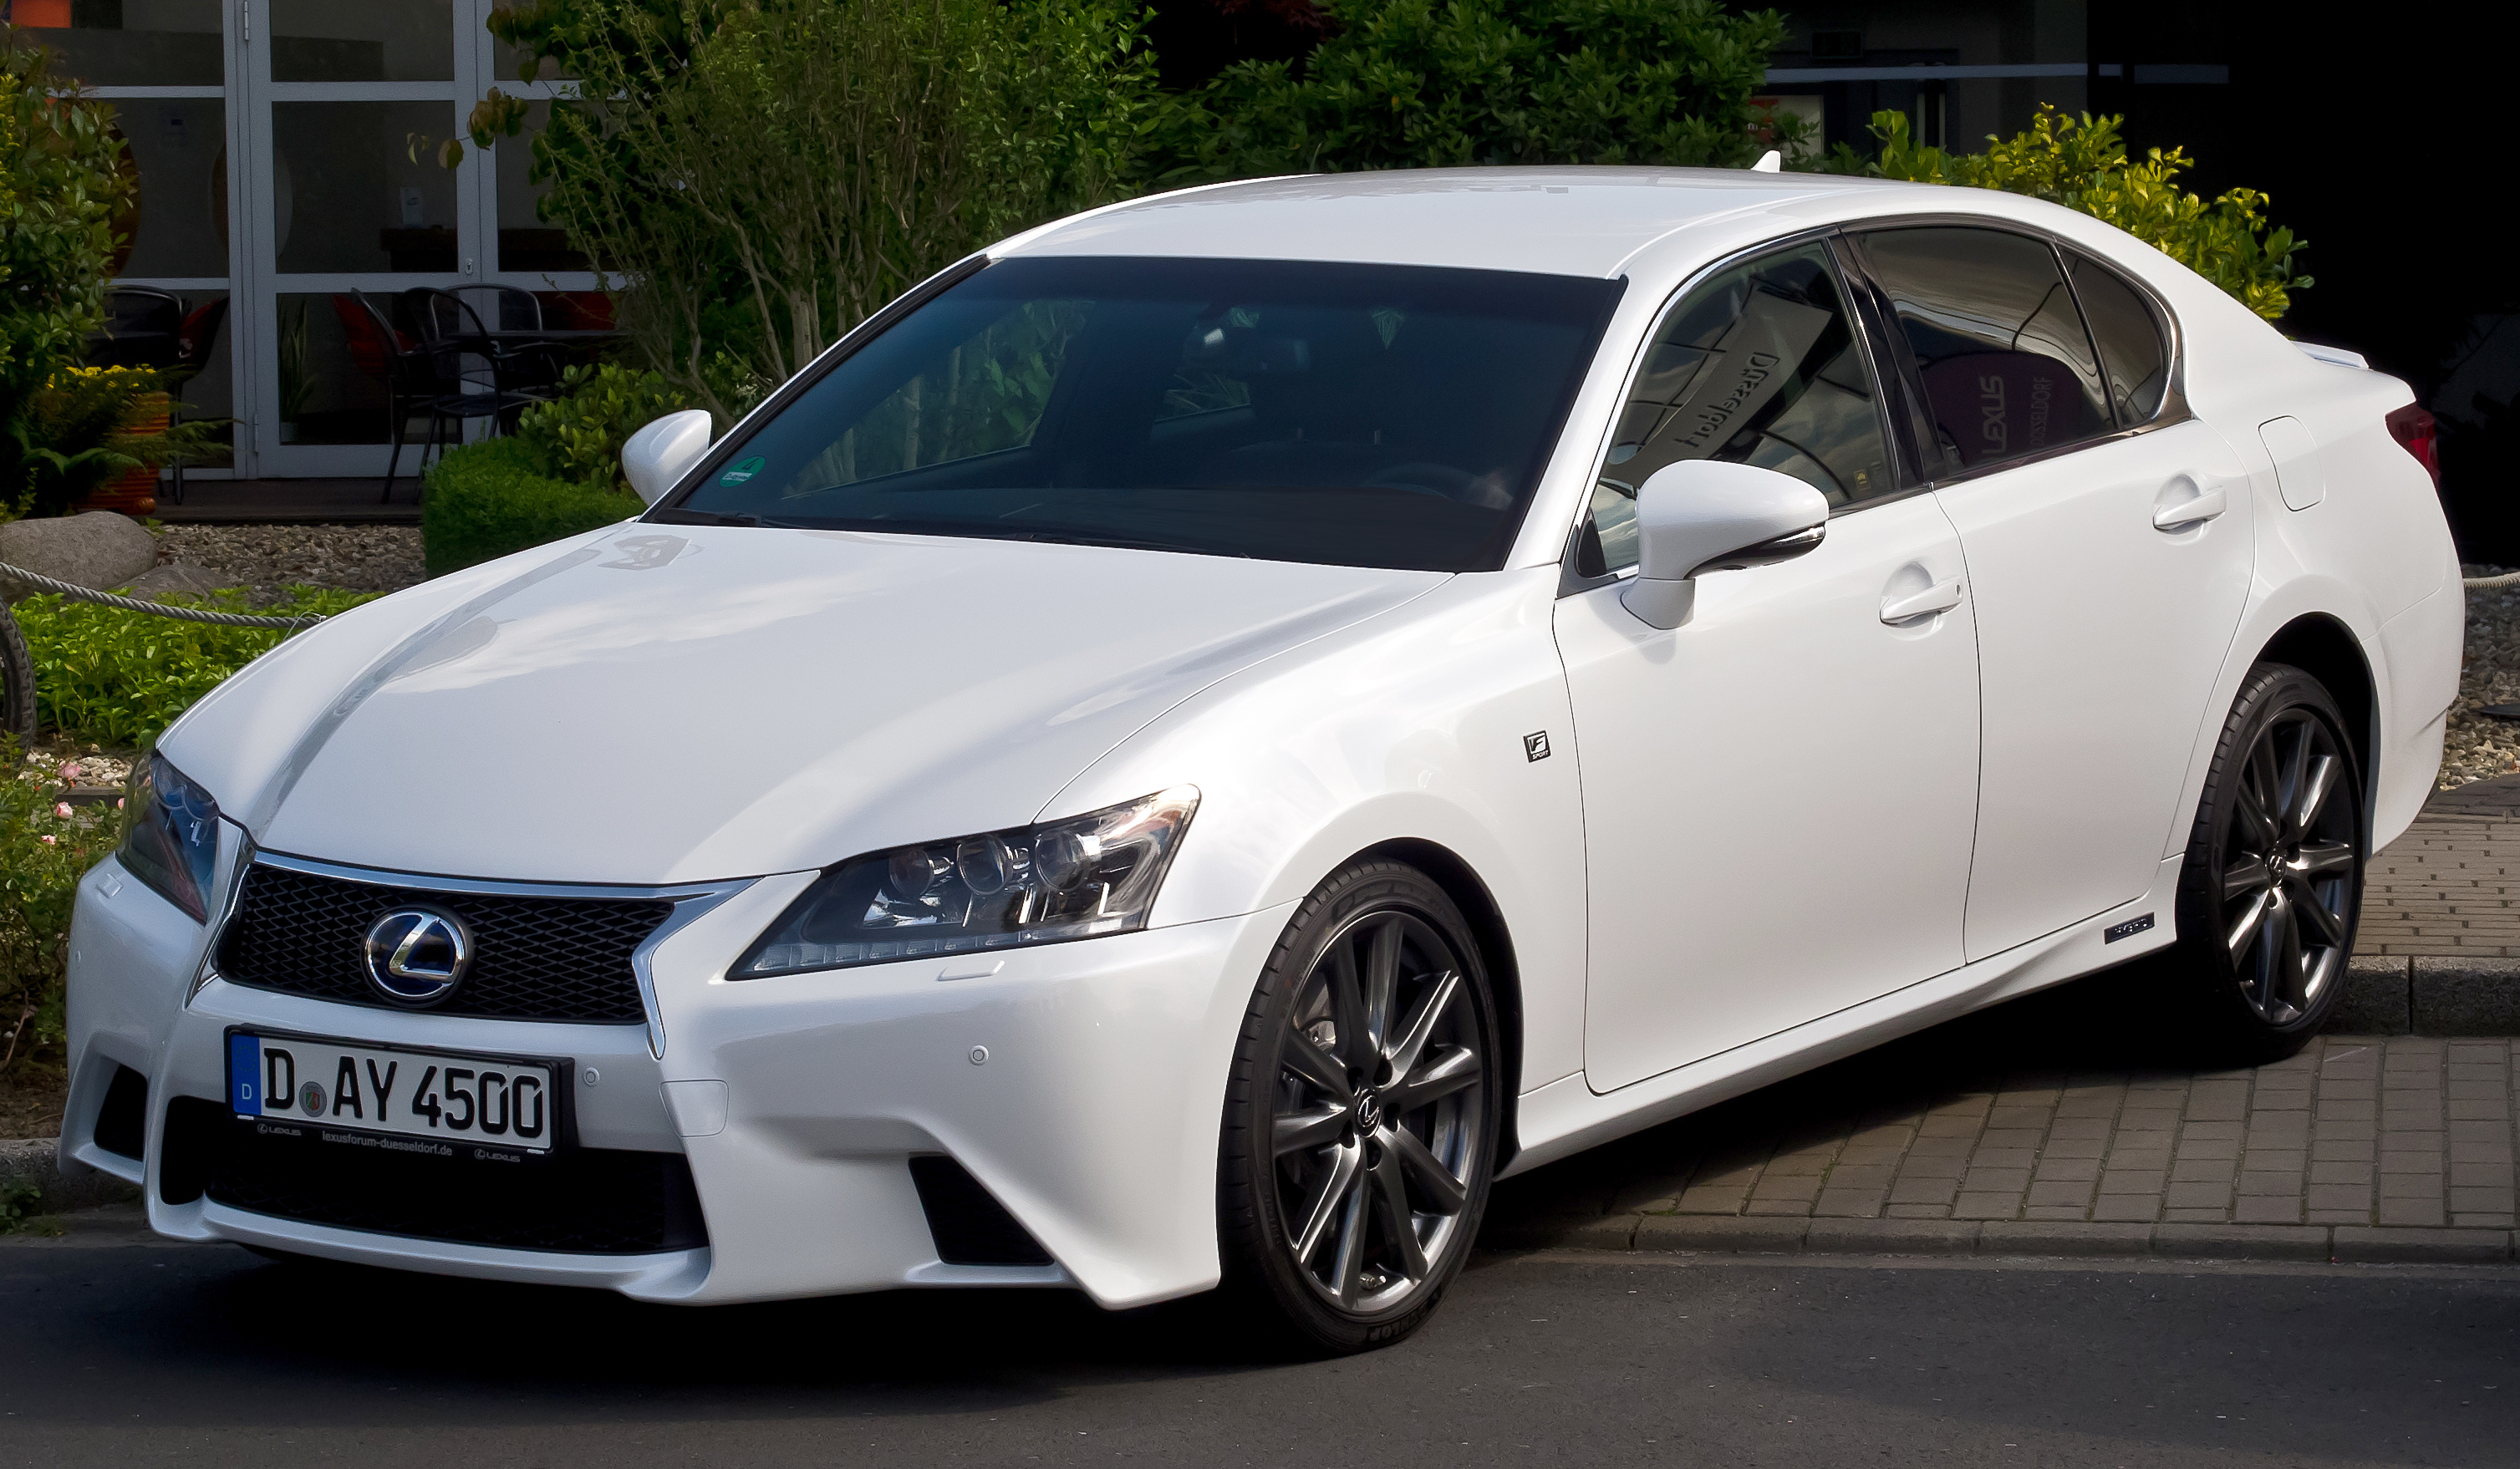 file lexus gs 450h f sport frontansicht 17 juni 2012. Black Bedroom Furniture Sets. Home Design Ideas